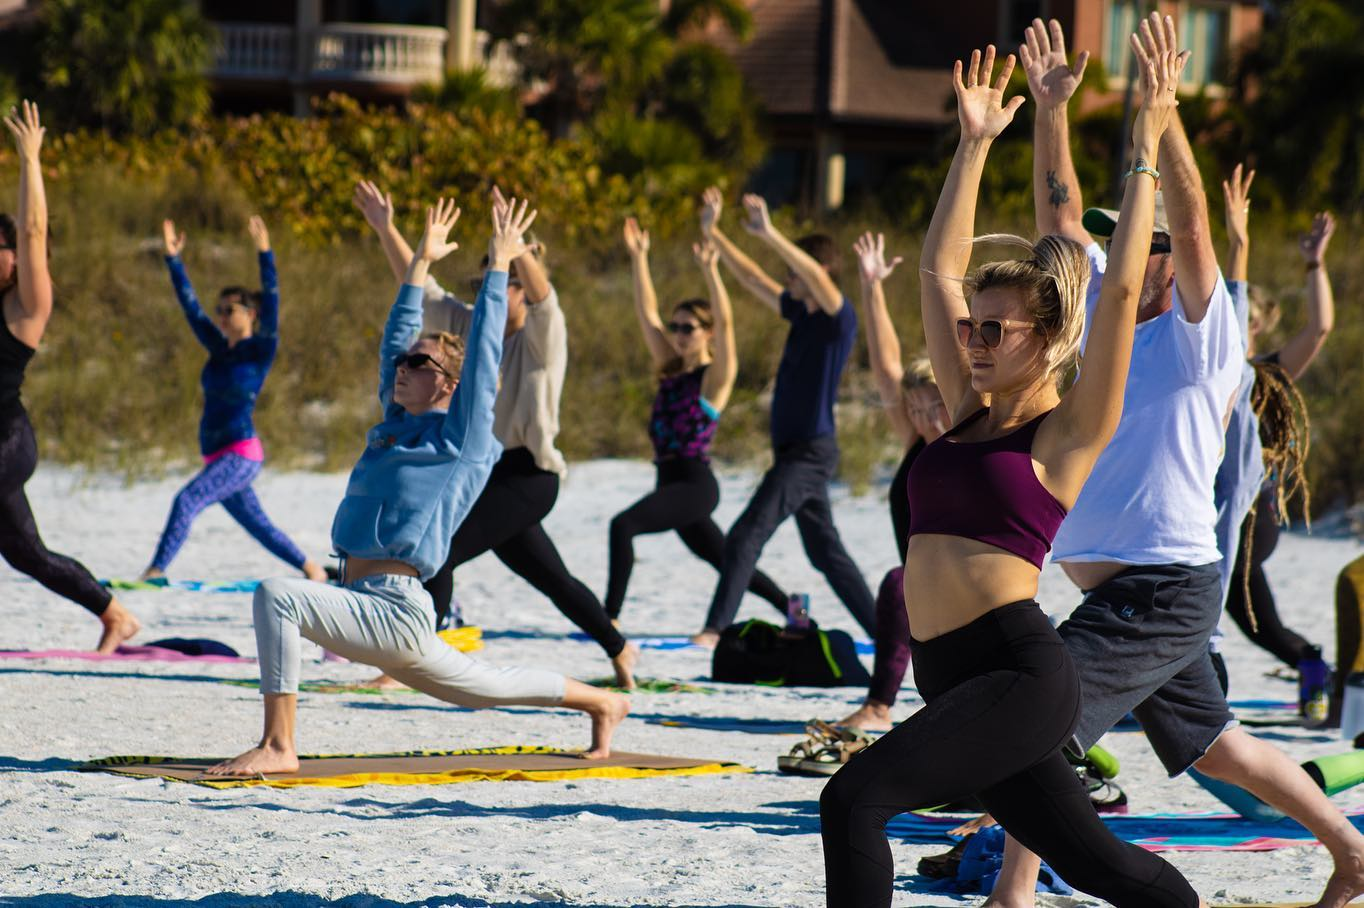 Men and women standing up and striking a yoga pose on the beach in community yoga